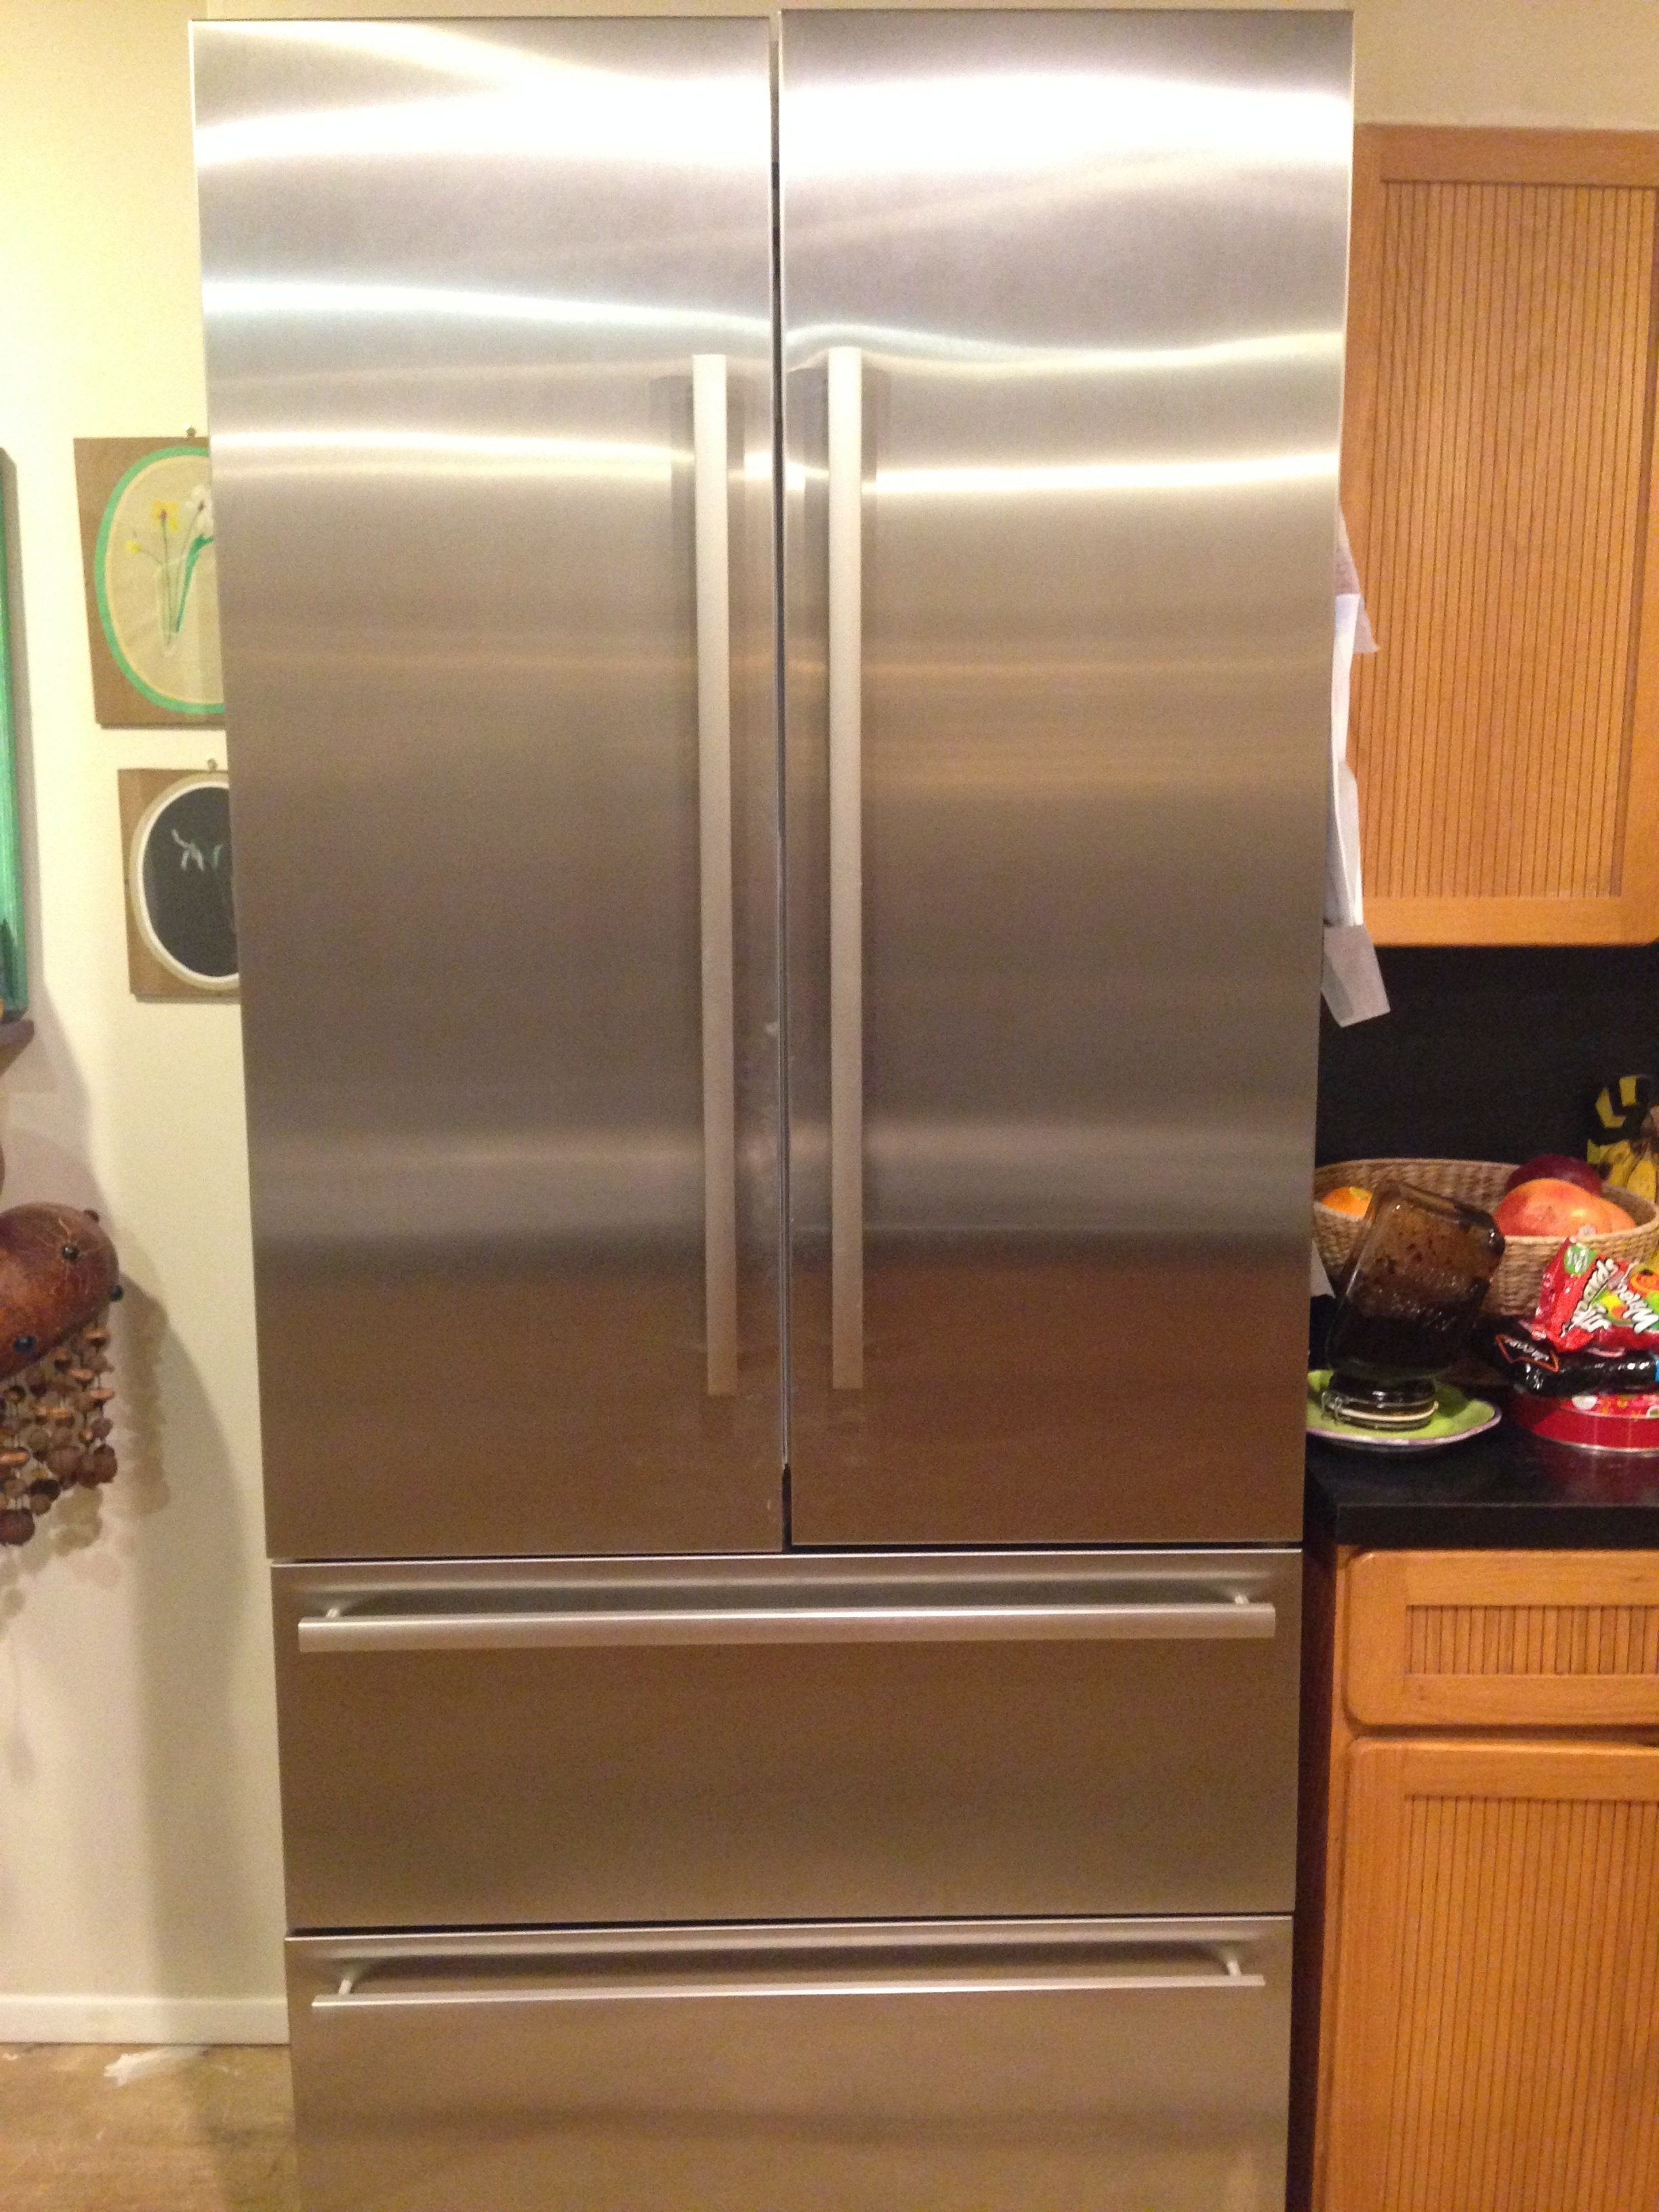 Top 100 Complaints And Reviews About Liebherr Refrigerator